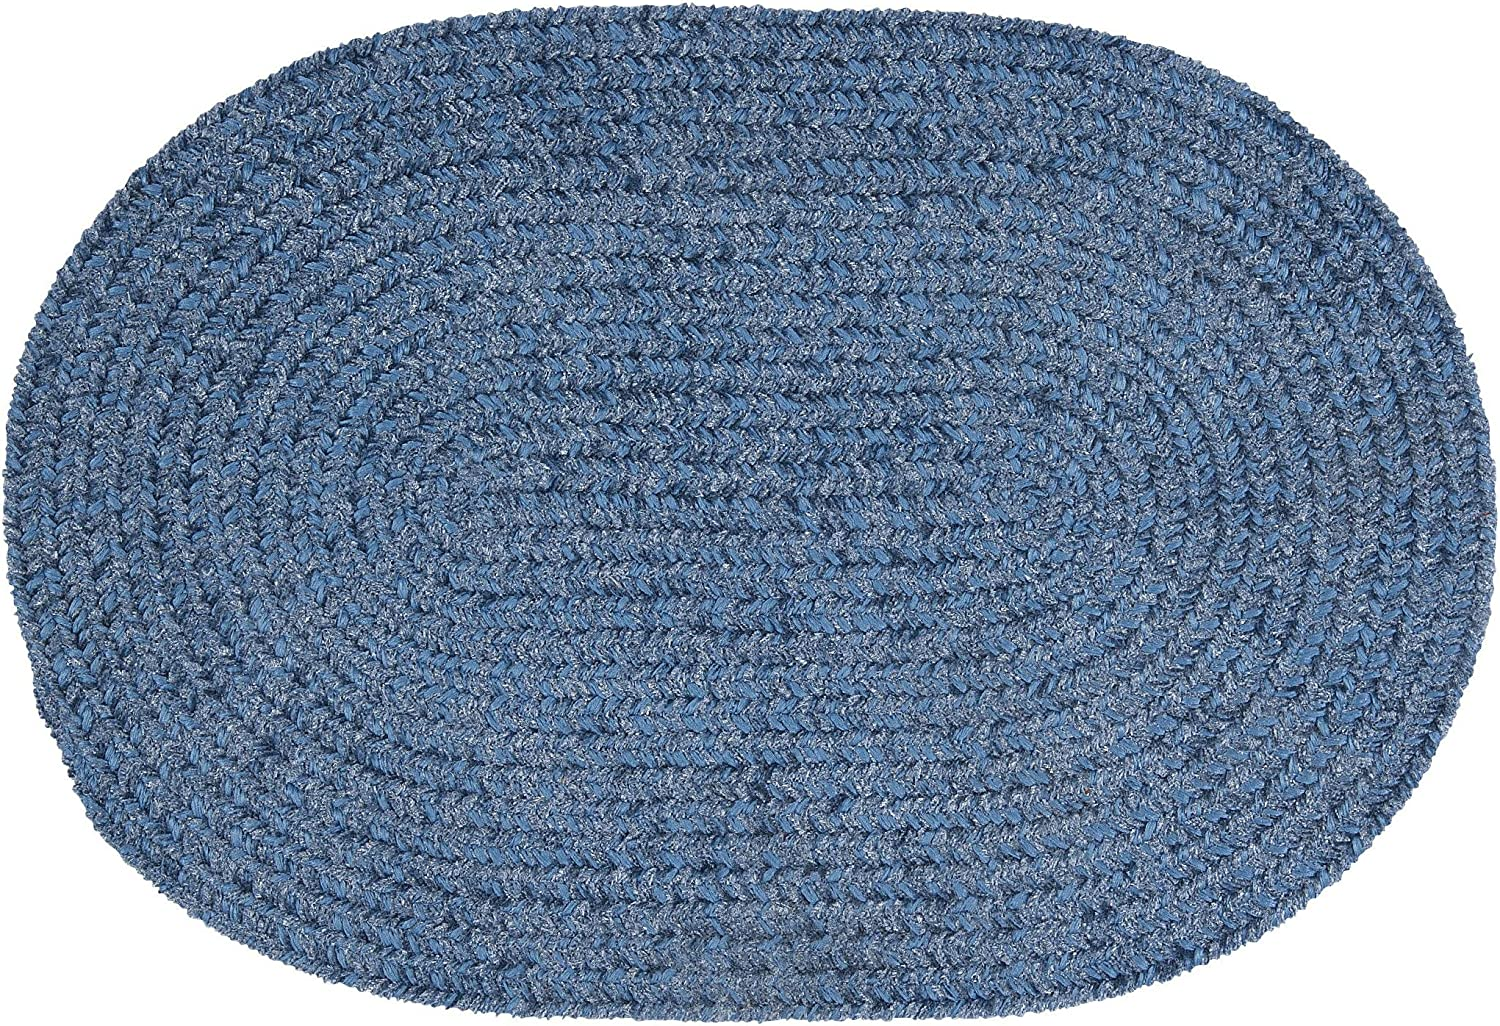 Colonial Max 67% OFF Mills Barefoot Max 42% OFF Chenilled Bath 34 22 x Blue Rug